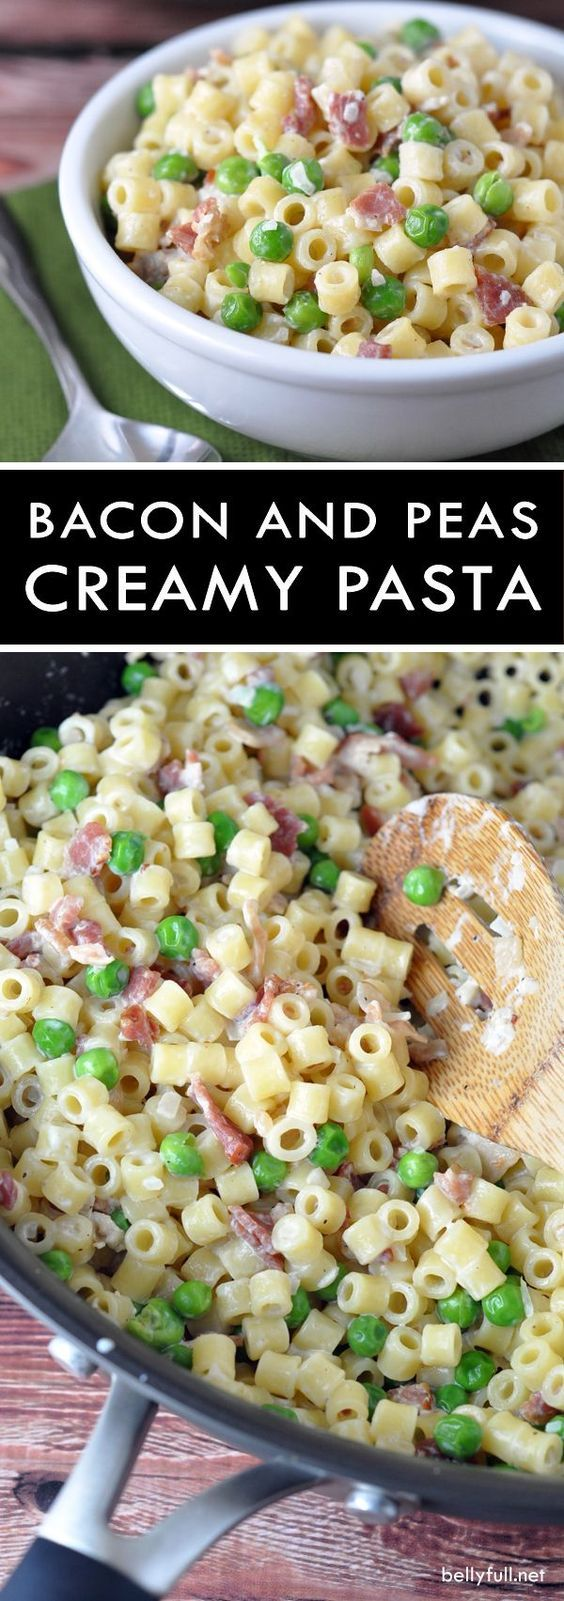 Creamy Pasta with Bacon and Peas - Delicious salty bacon and sweet delicate peas come together in this 20-minute creamy pasta dish!